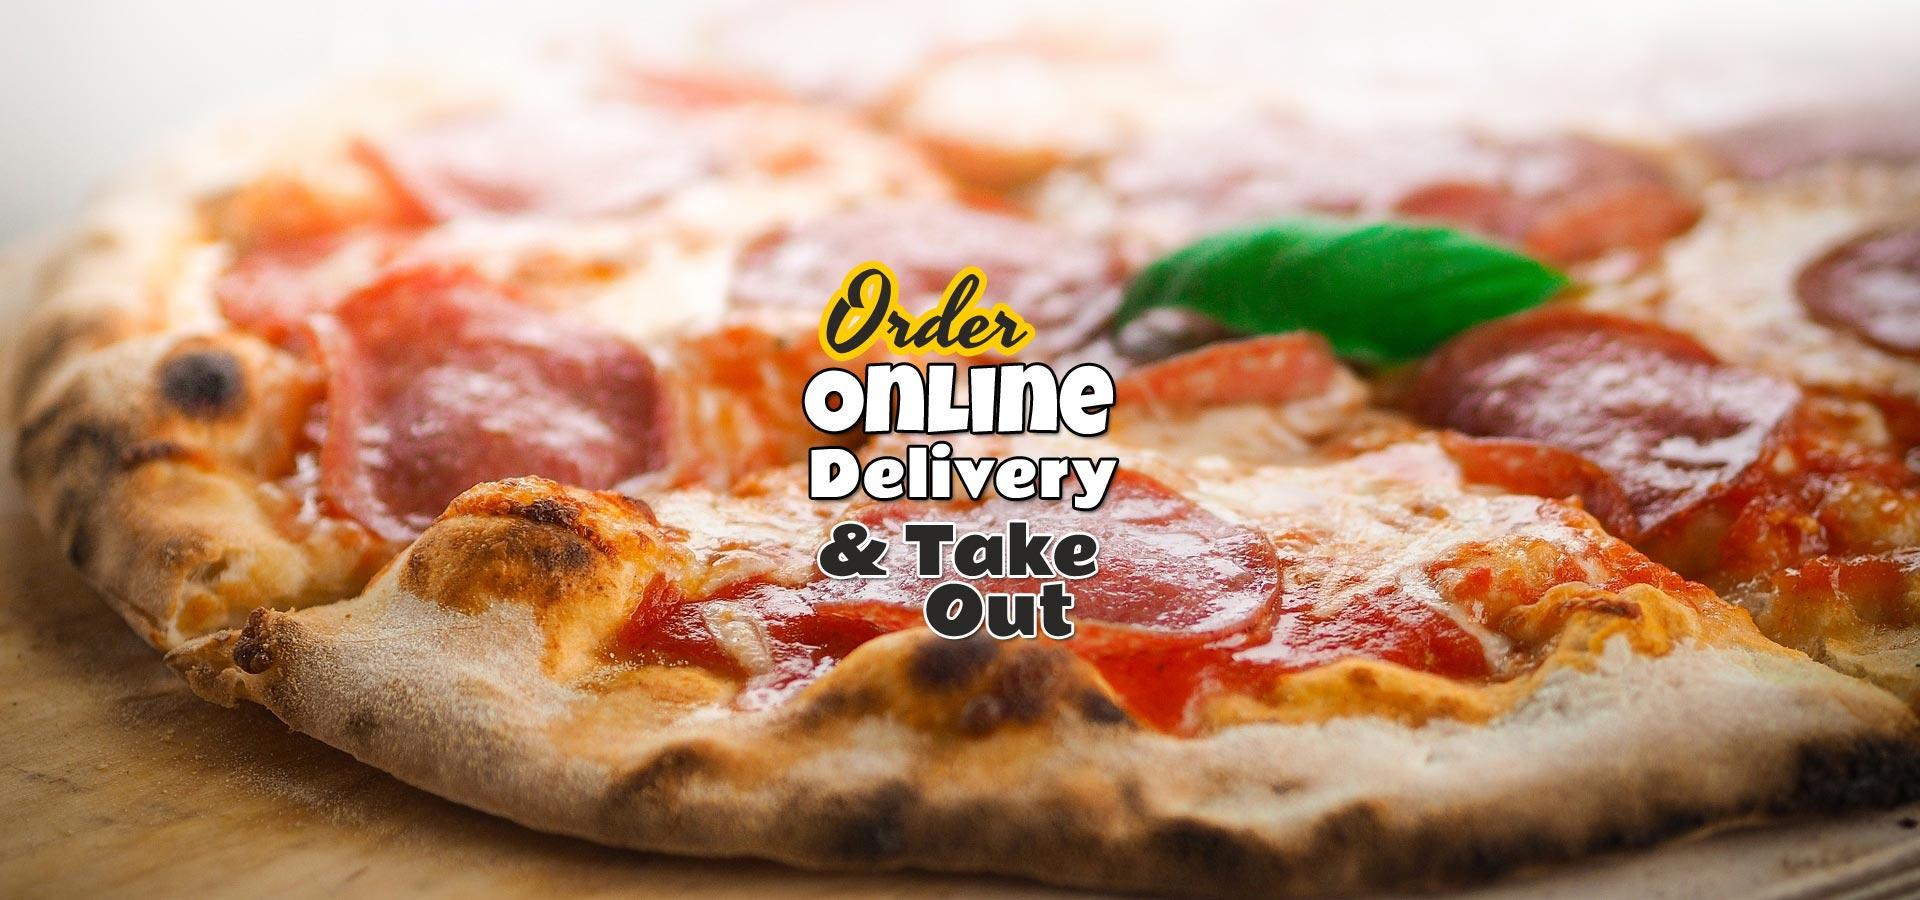 Pizza Belmar Nj Online Ordering Delivery Takeout